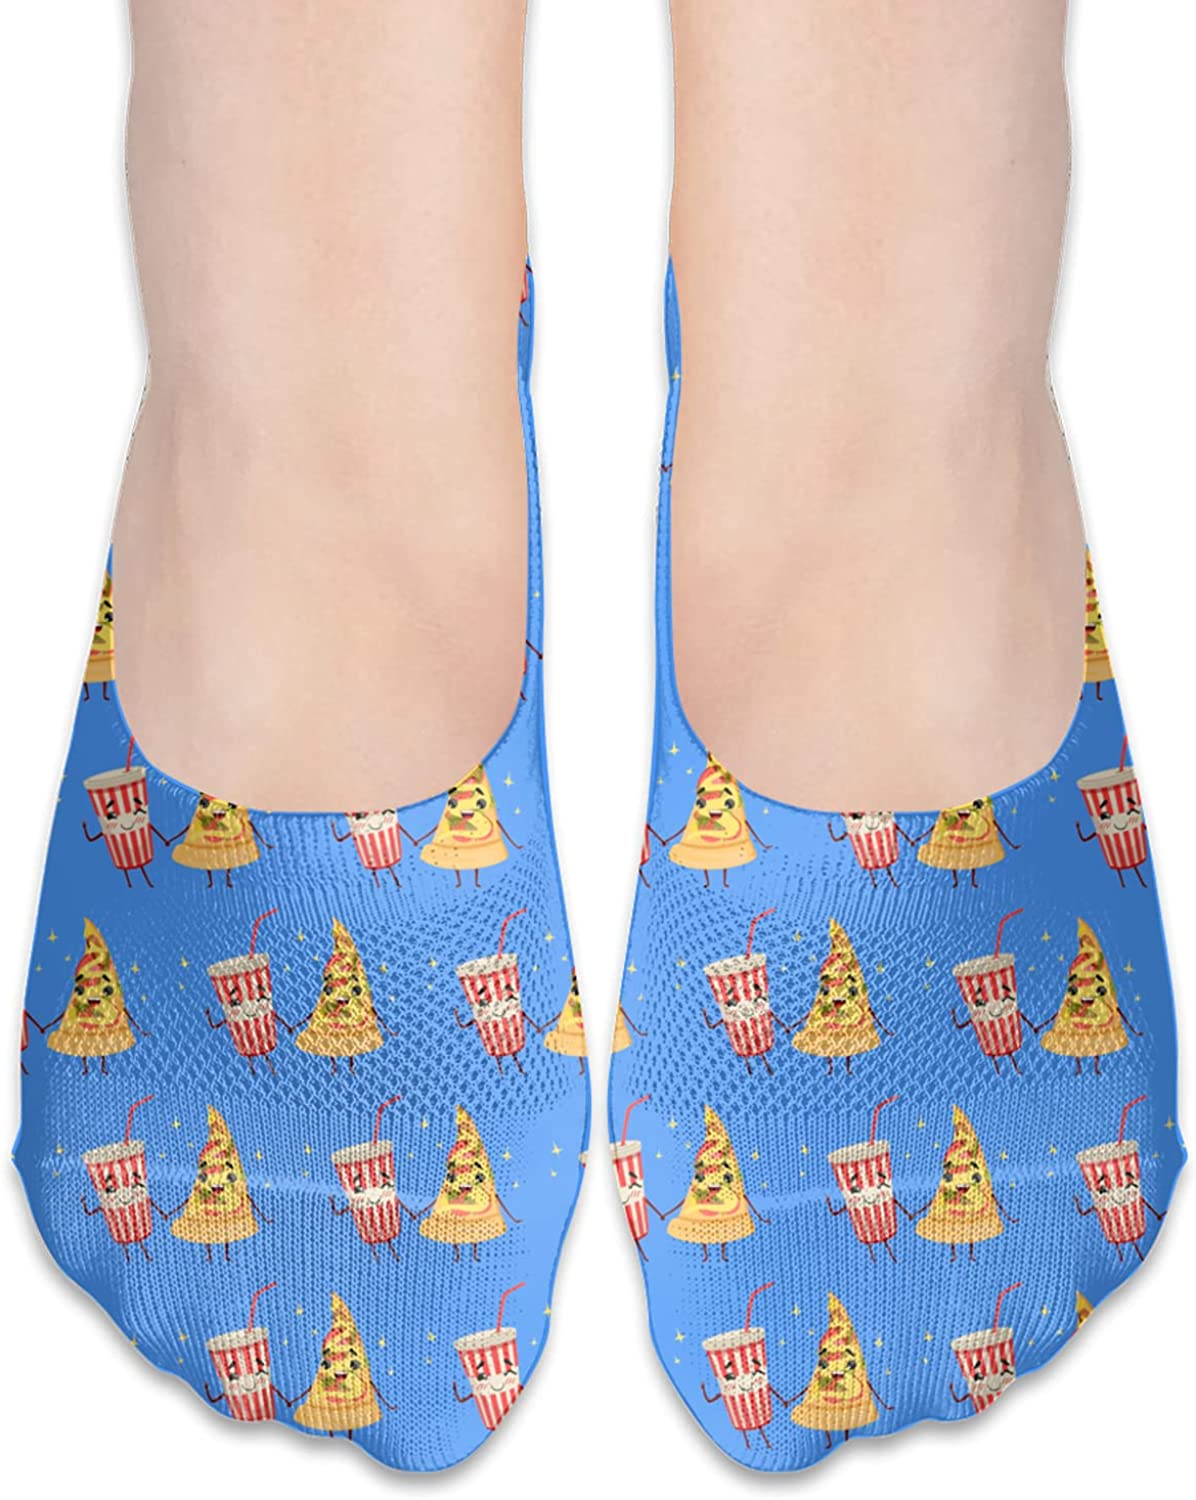 No Show Socks Women Men For Funny Cocktail And Slice Pizza Flats Cotton Ultra Low Cut Liner Socks Non Slip